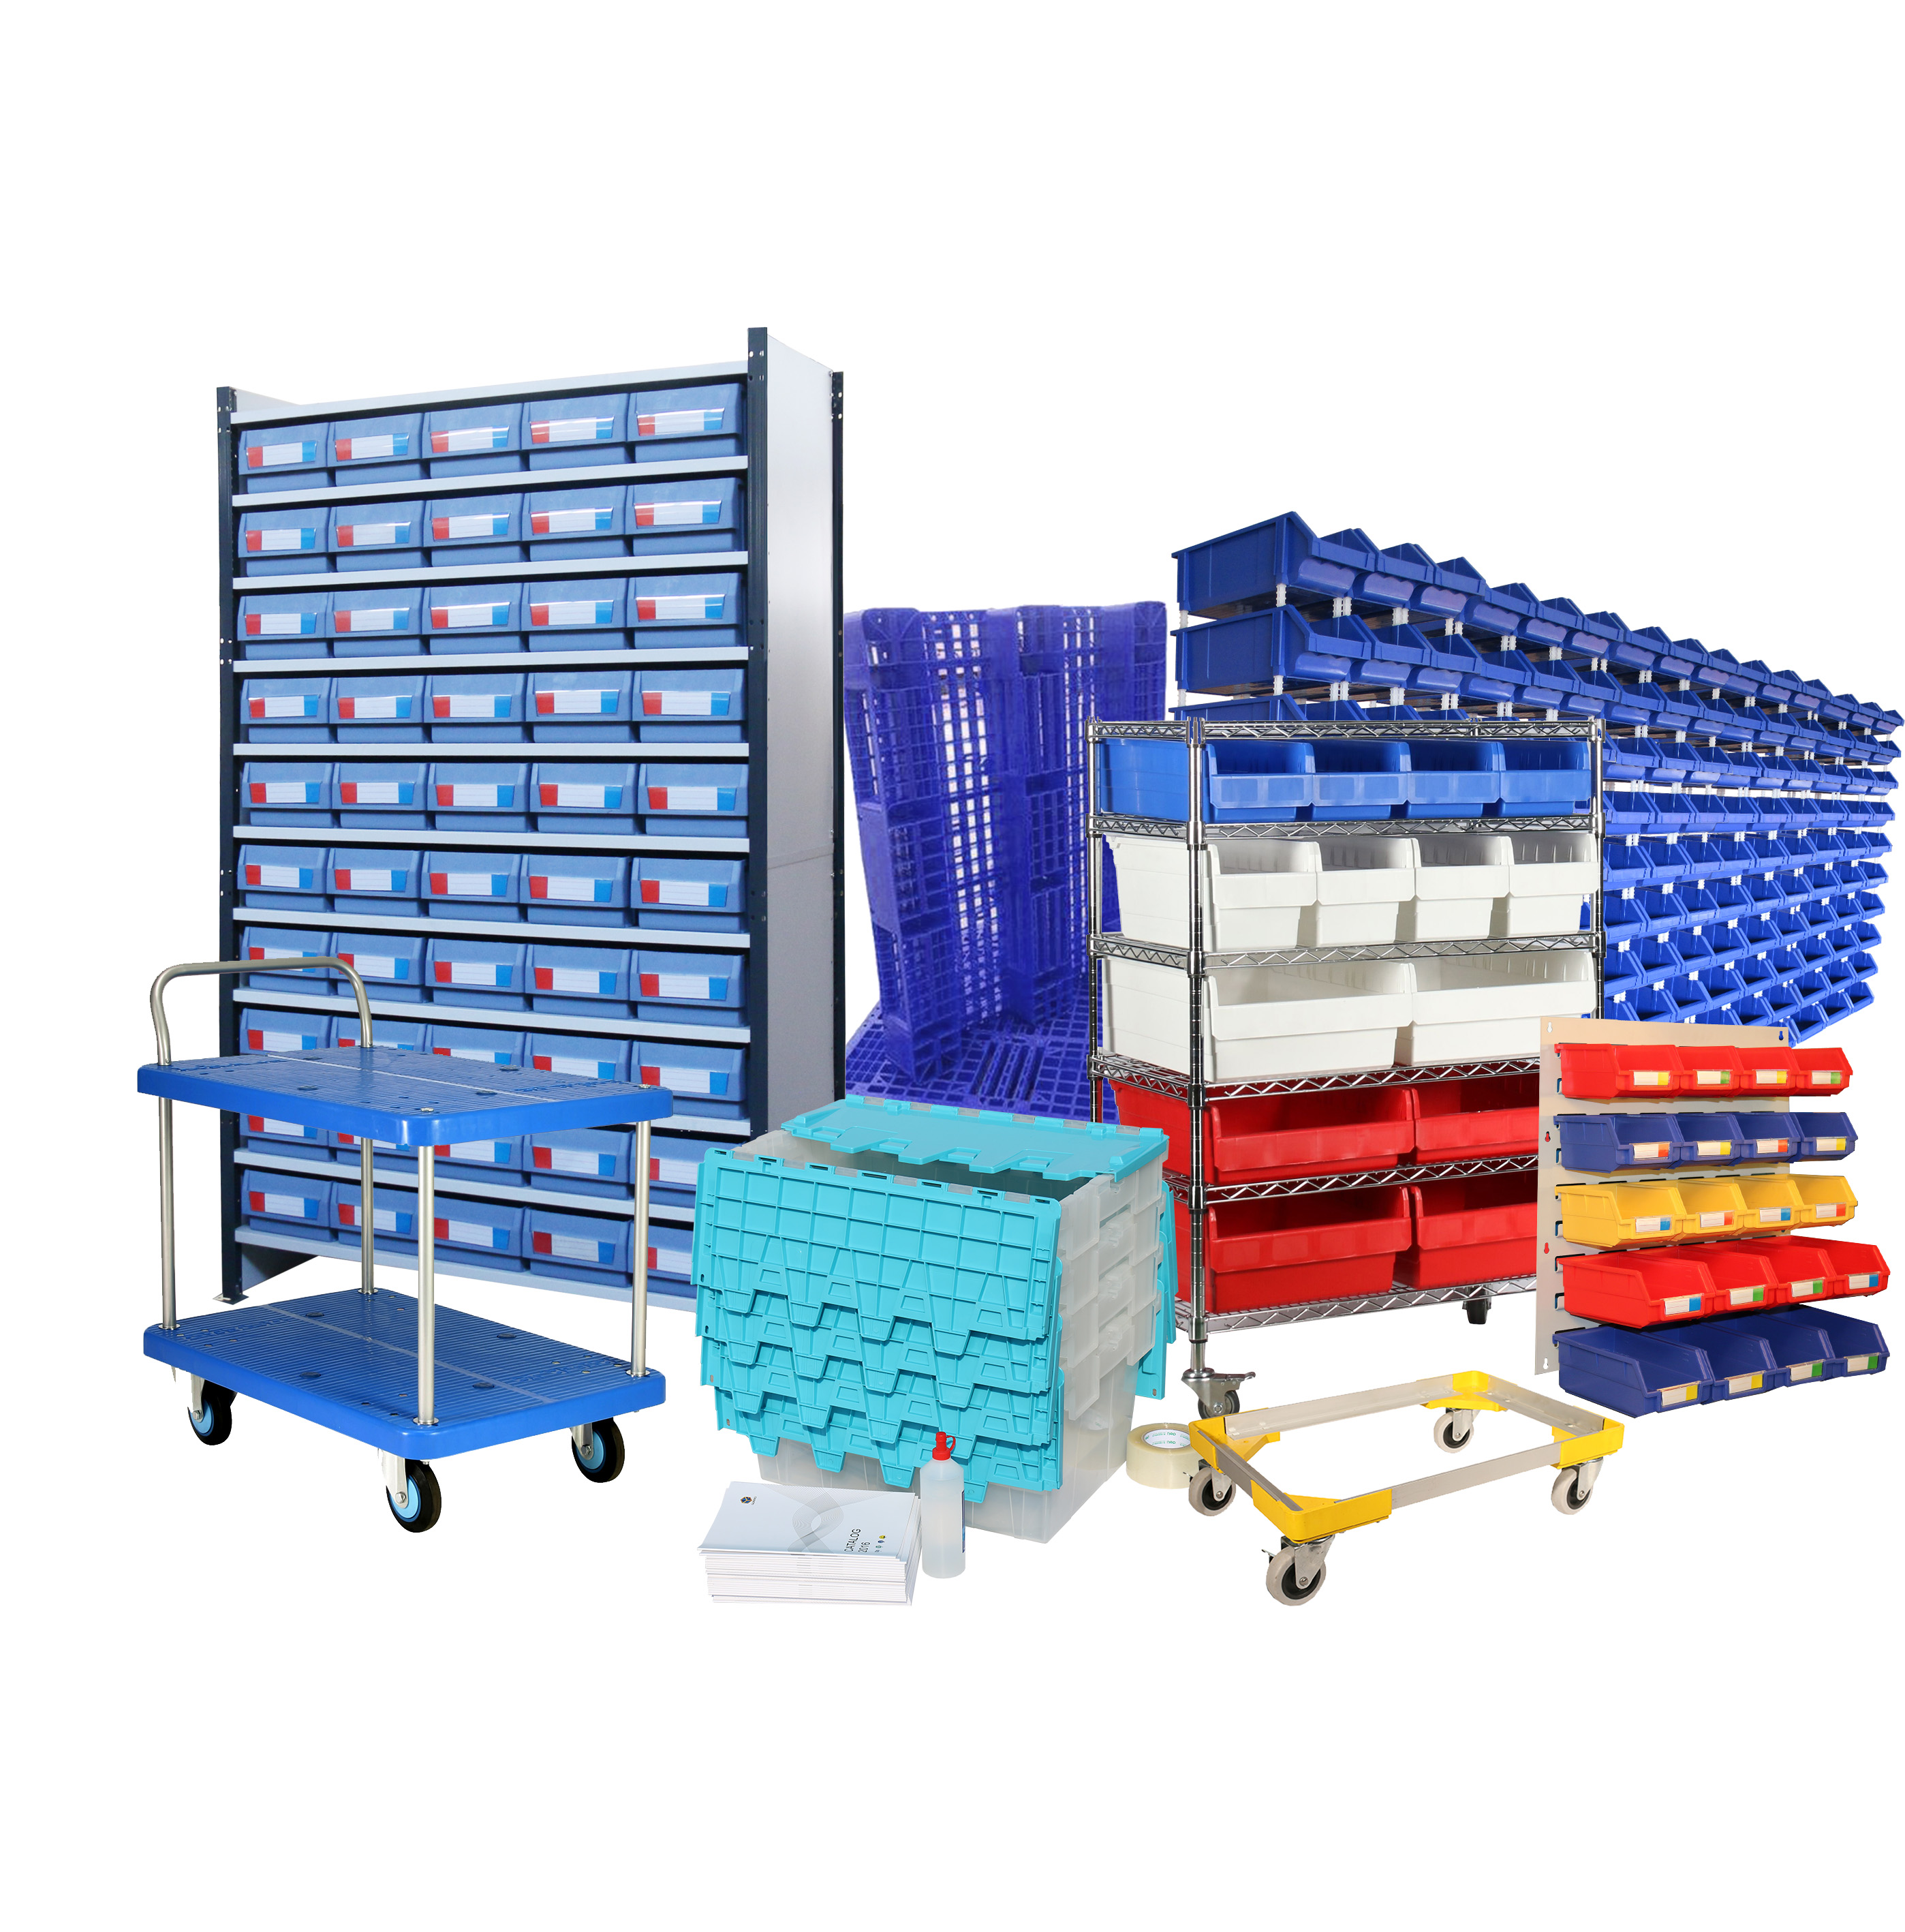 Storage handling and organization products manufacturer